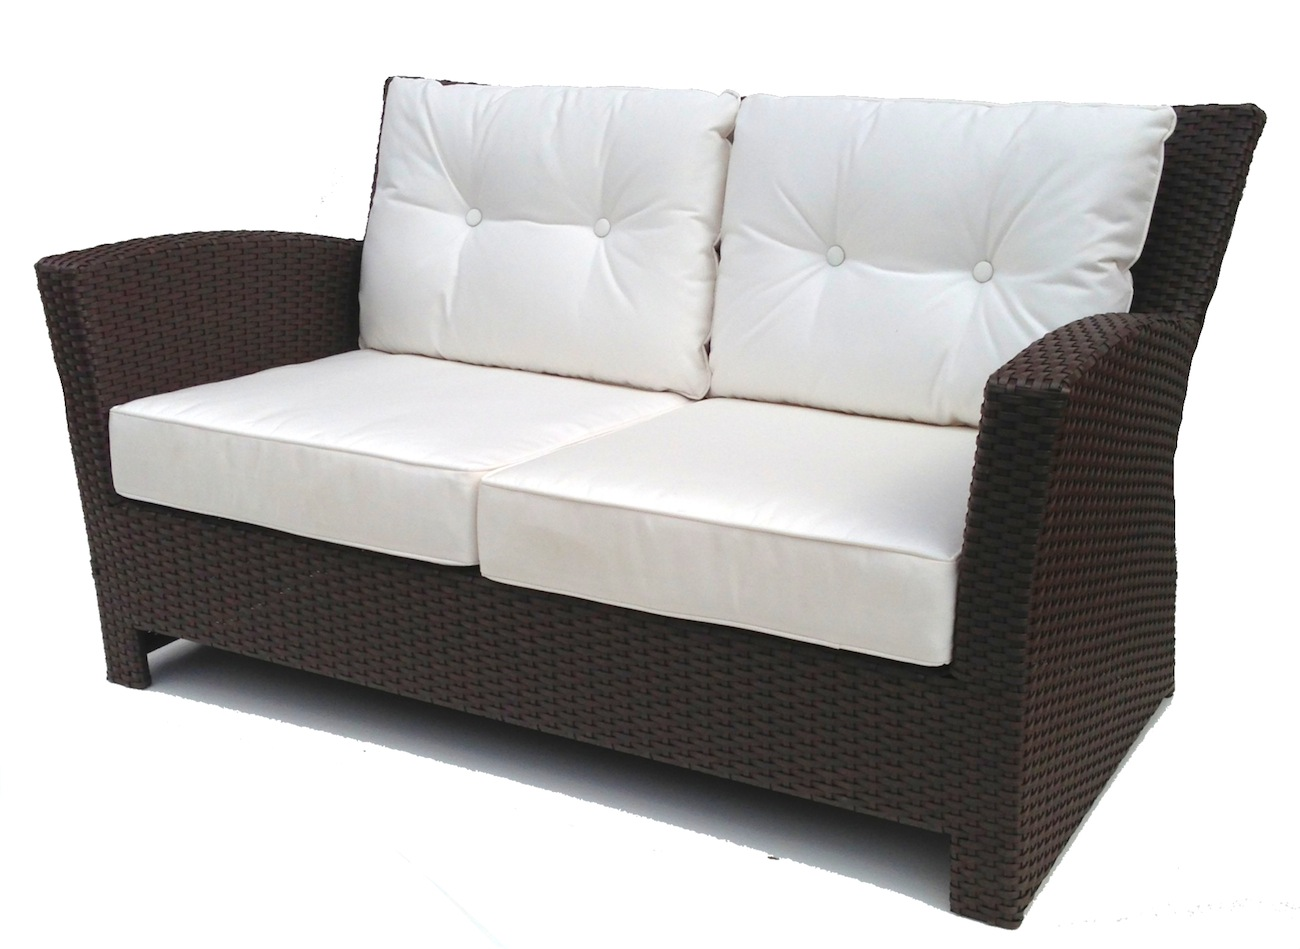 Outdoor Sofa Wicker Hampton Bay Spring Haven Brown All